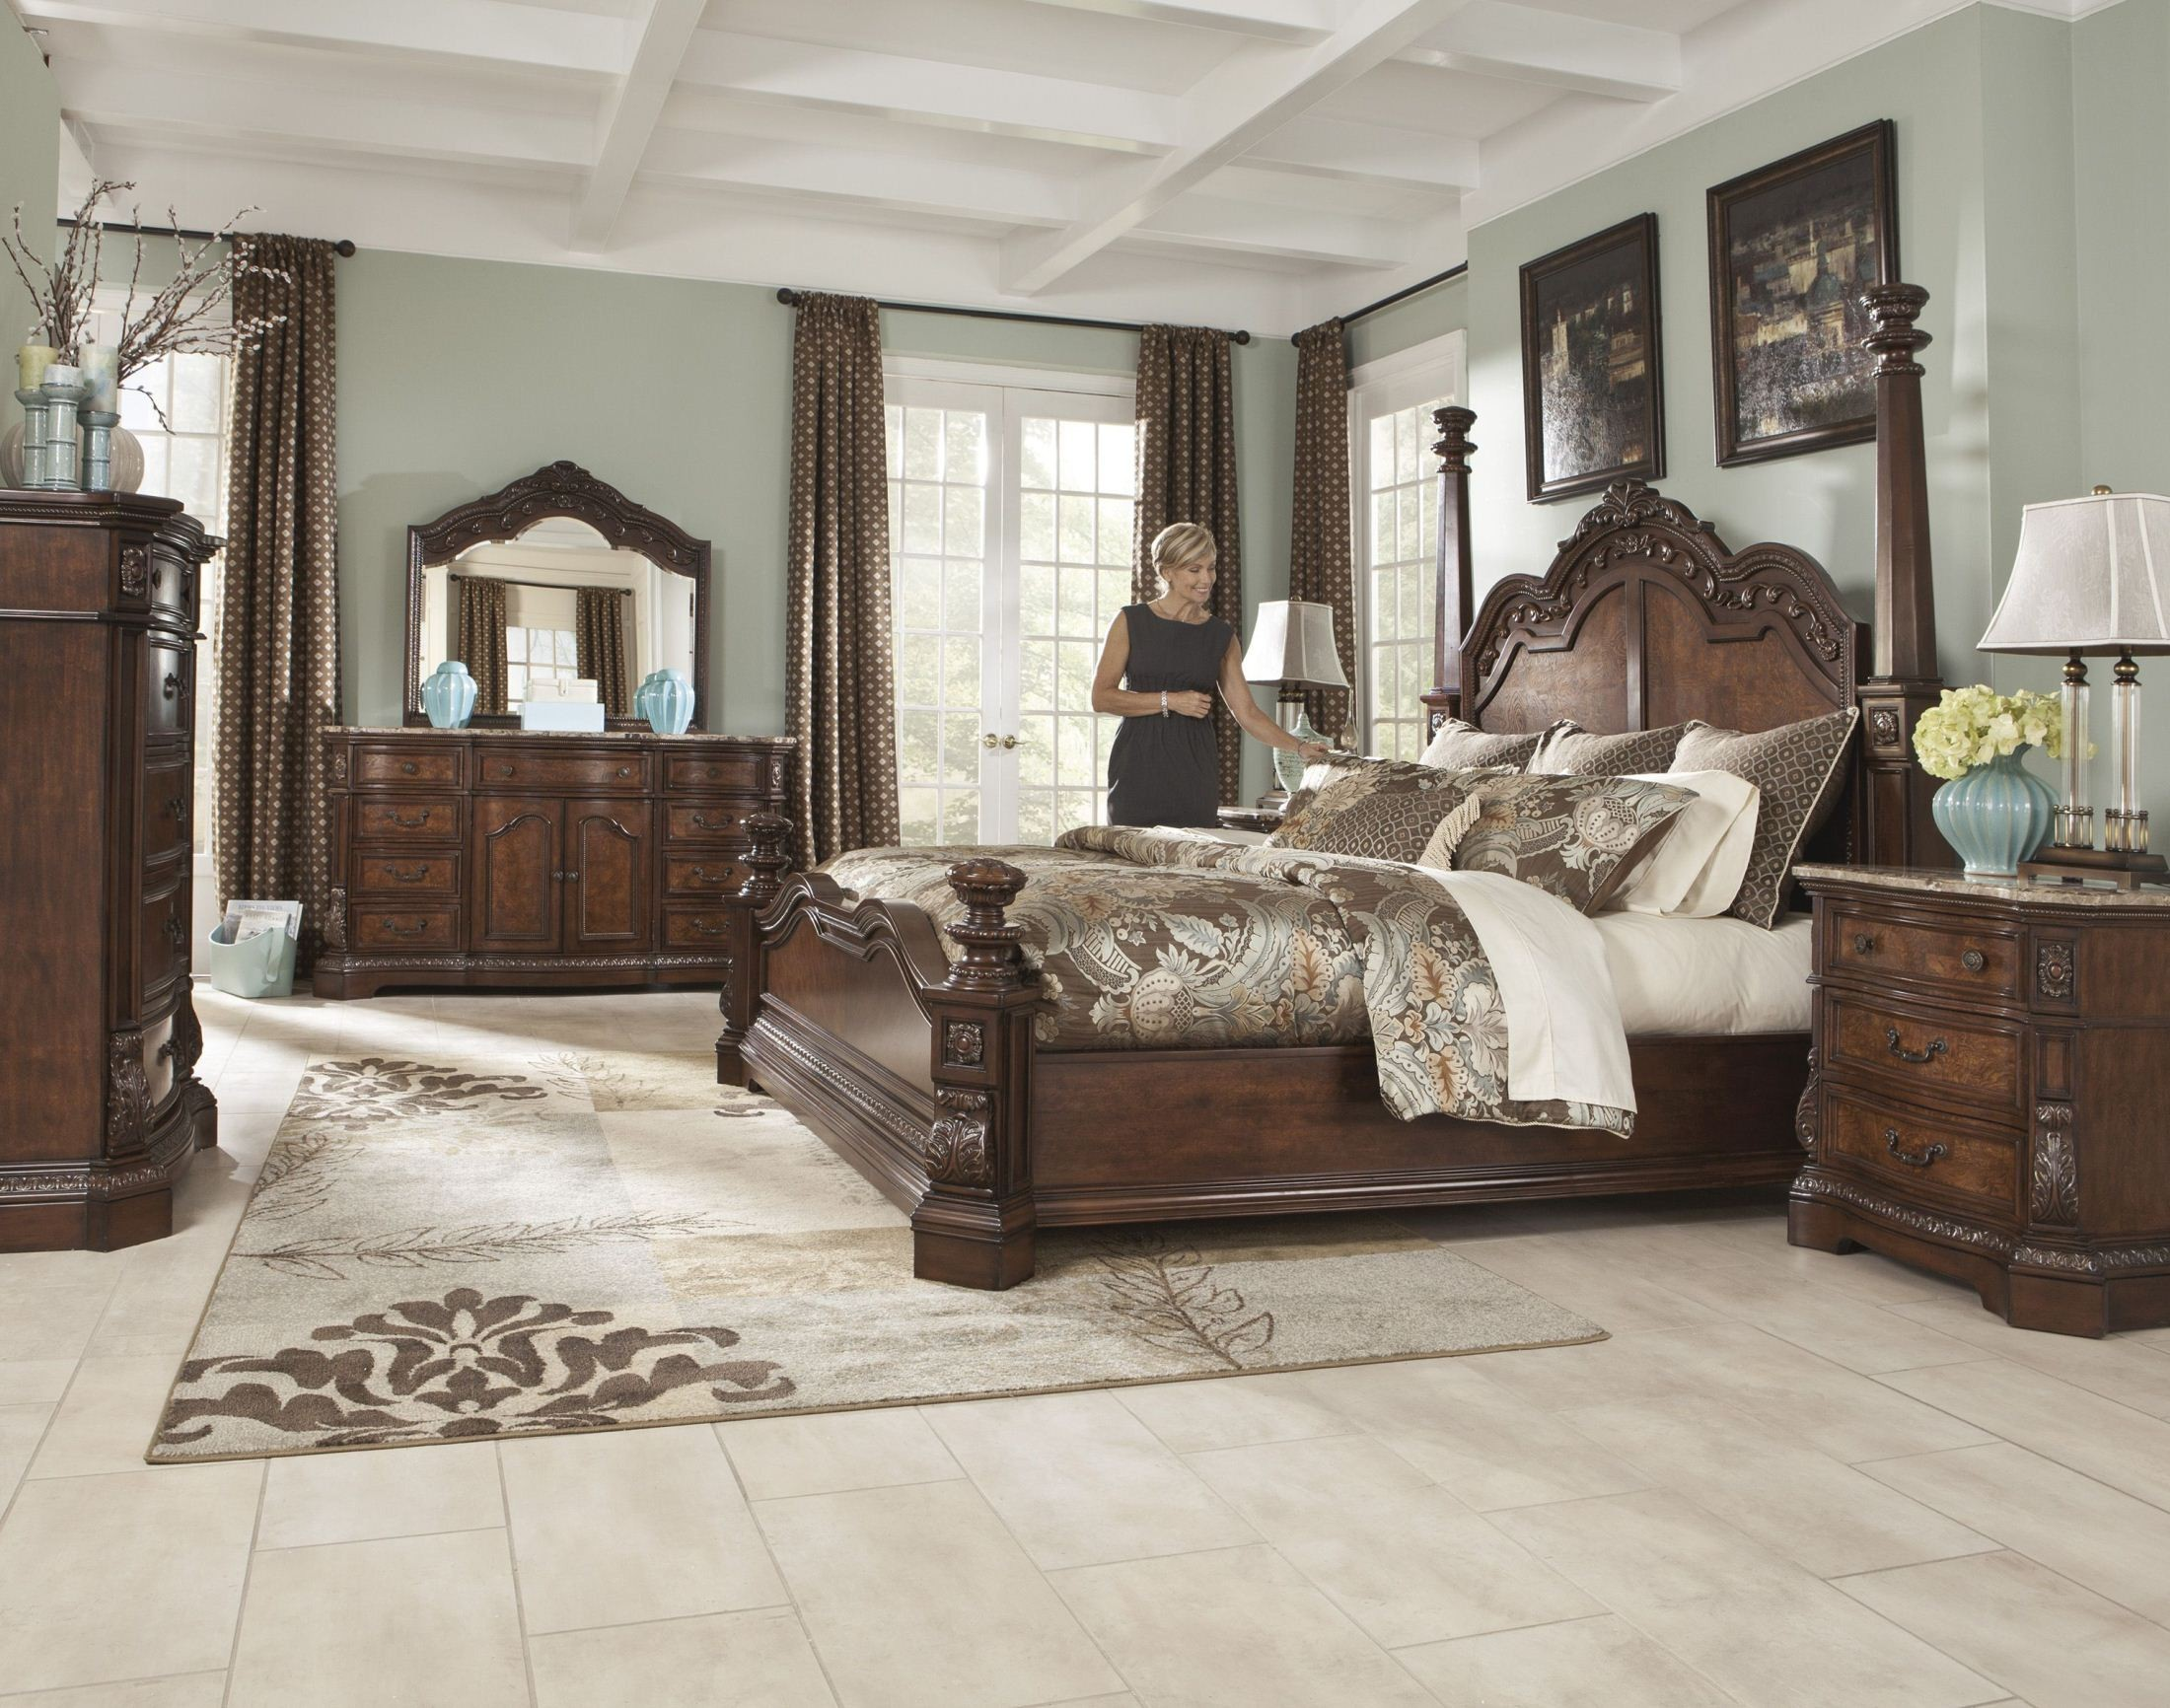 Marble Top Bedroom Furniture Ledelle Poster Bedroom Set From Ashley B705 51 71 98 Coleman